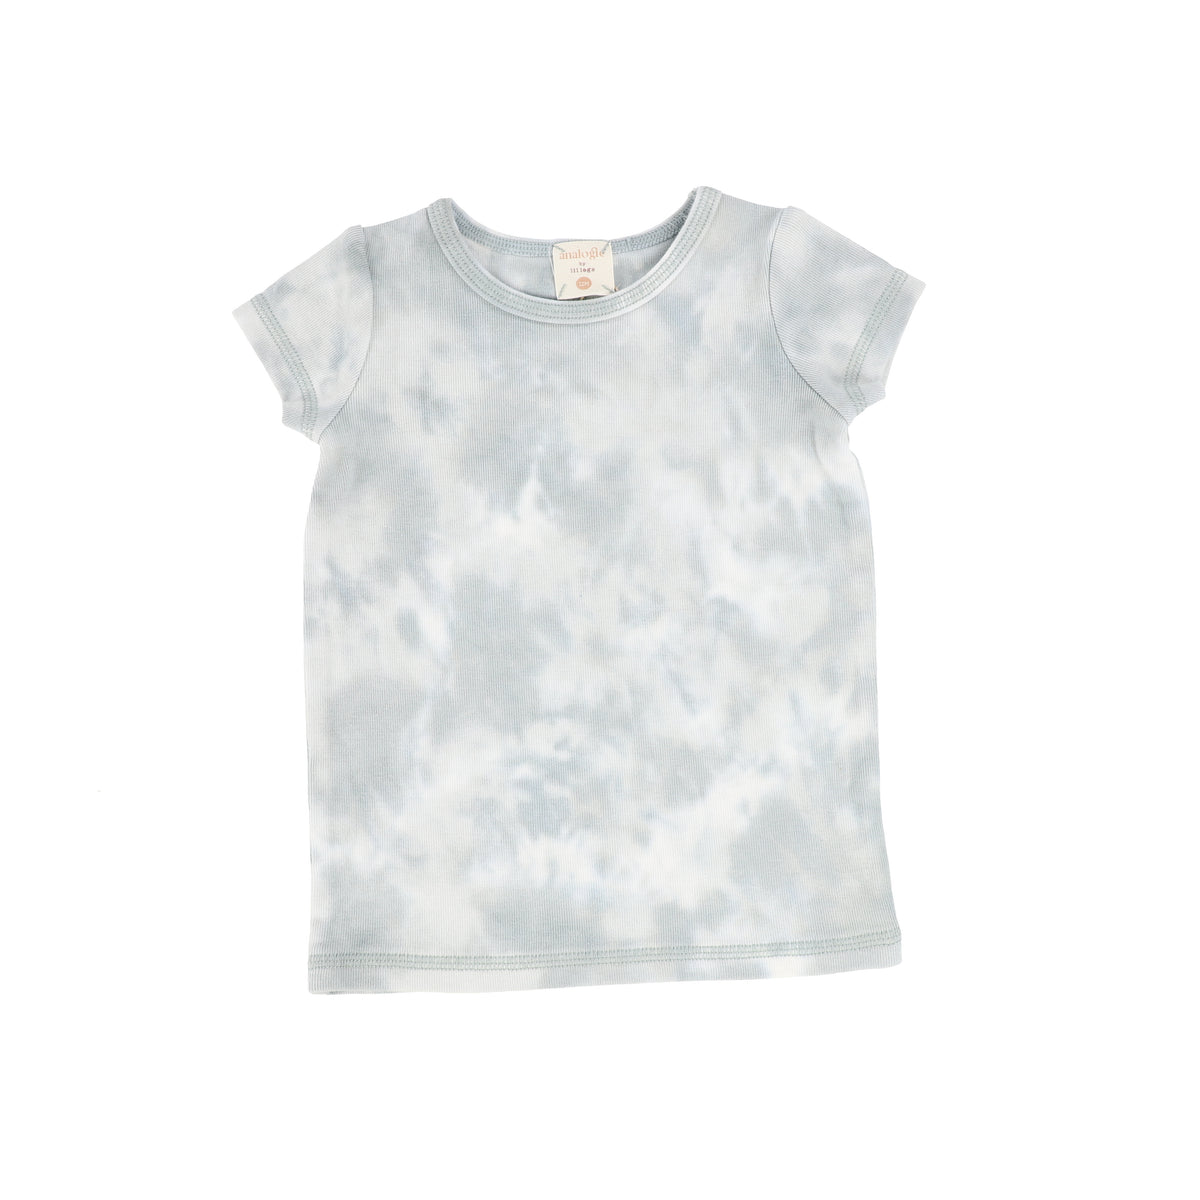 Seafoam Watercolor Short Sleeve Tee